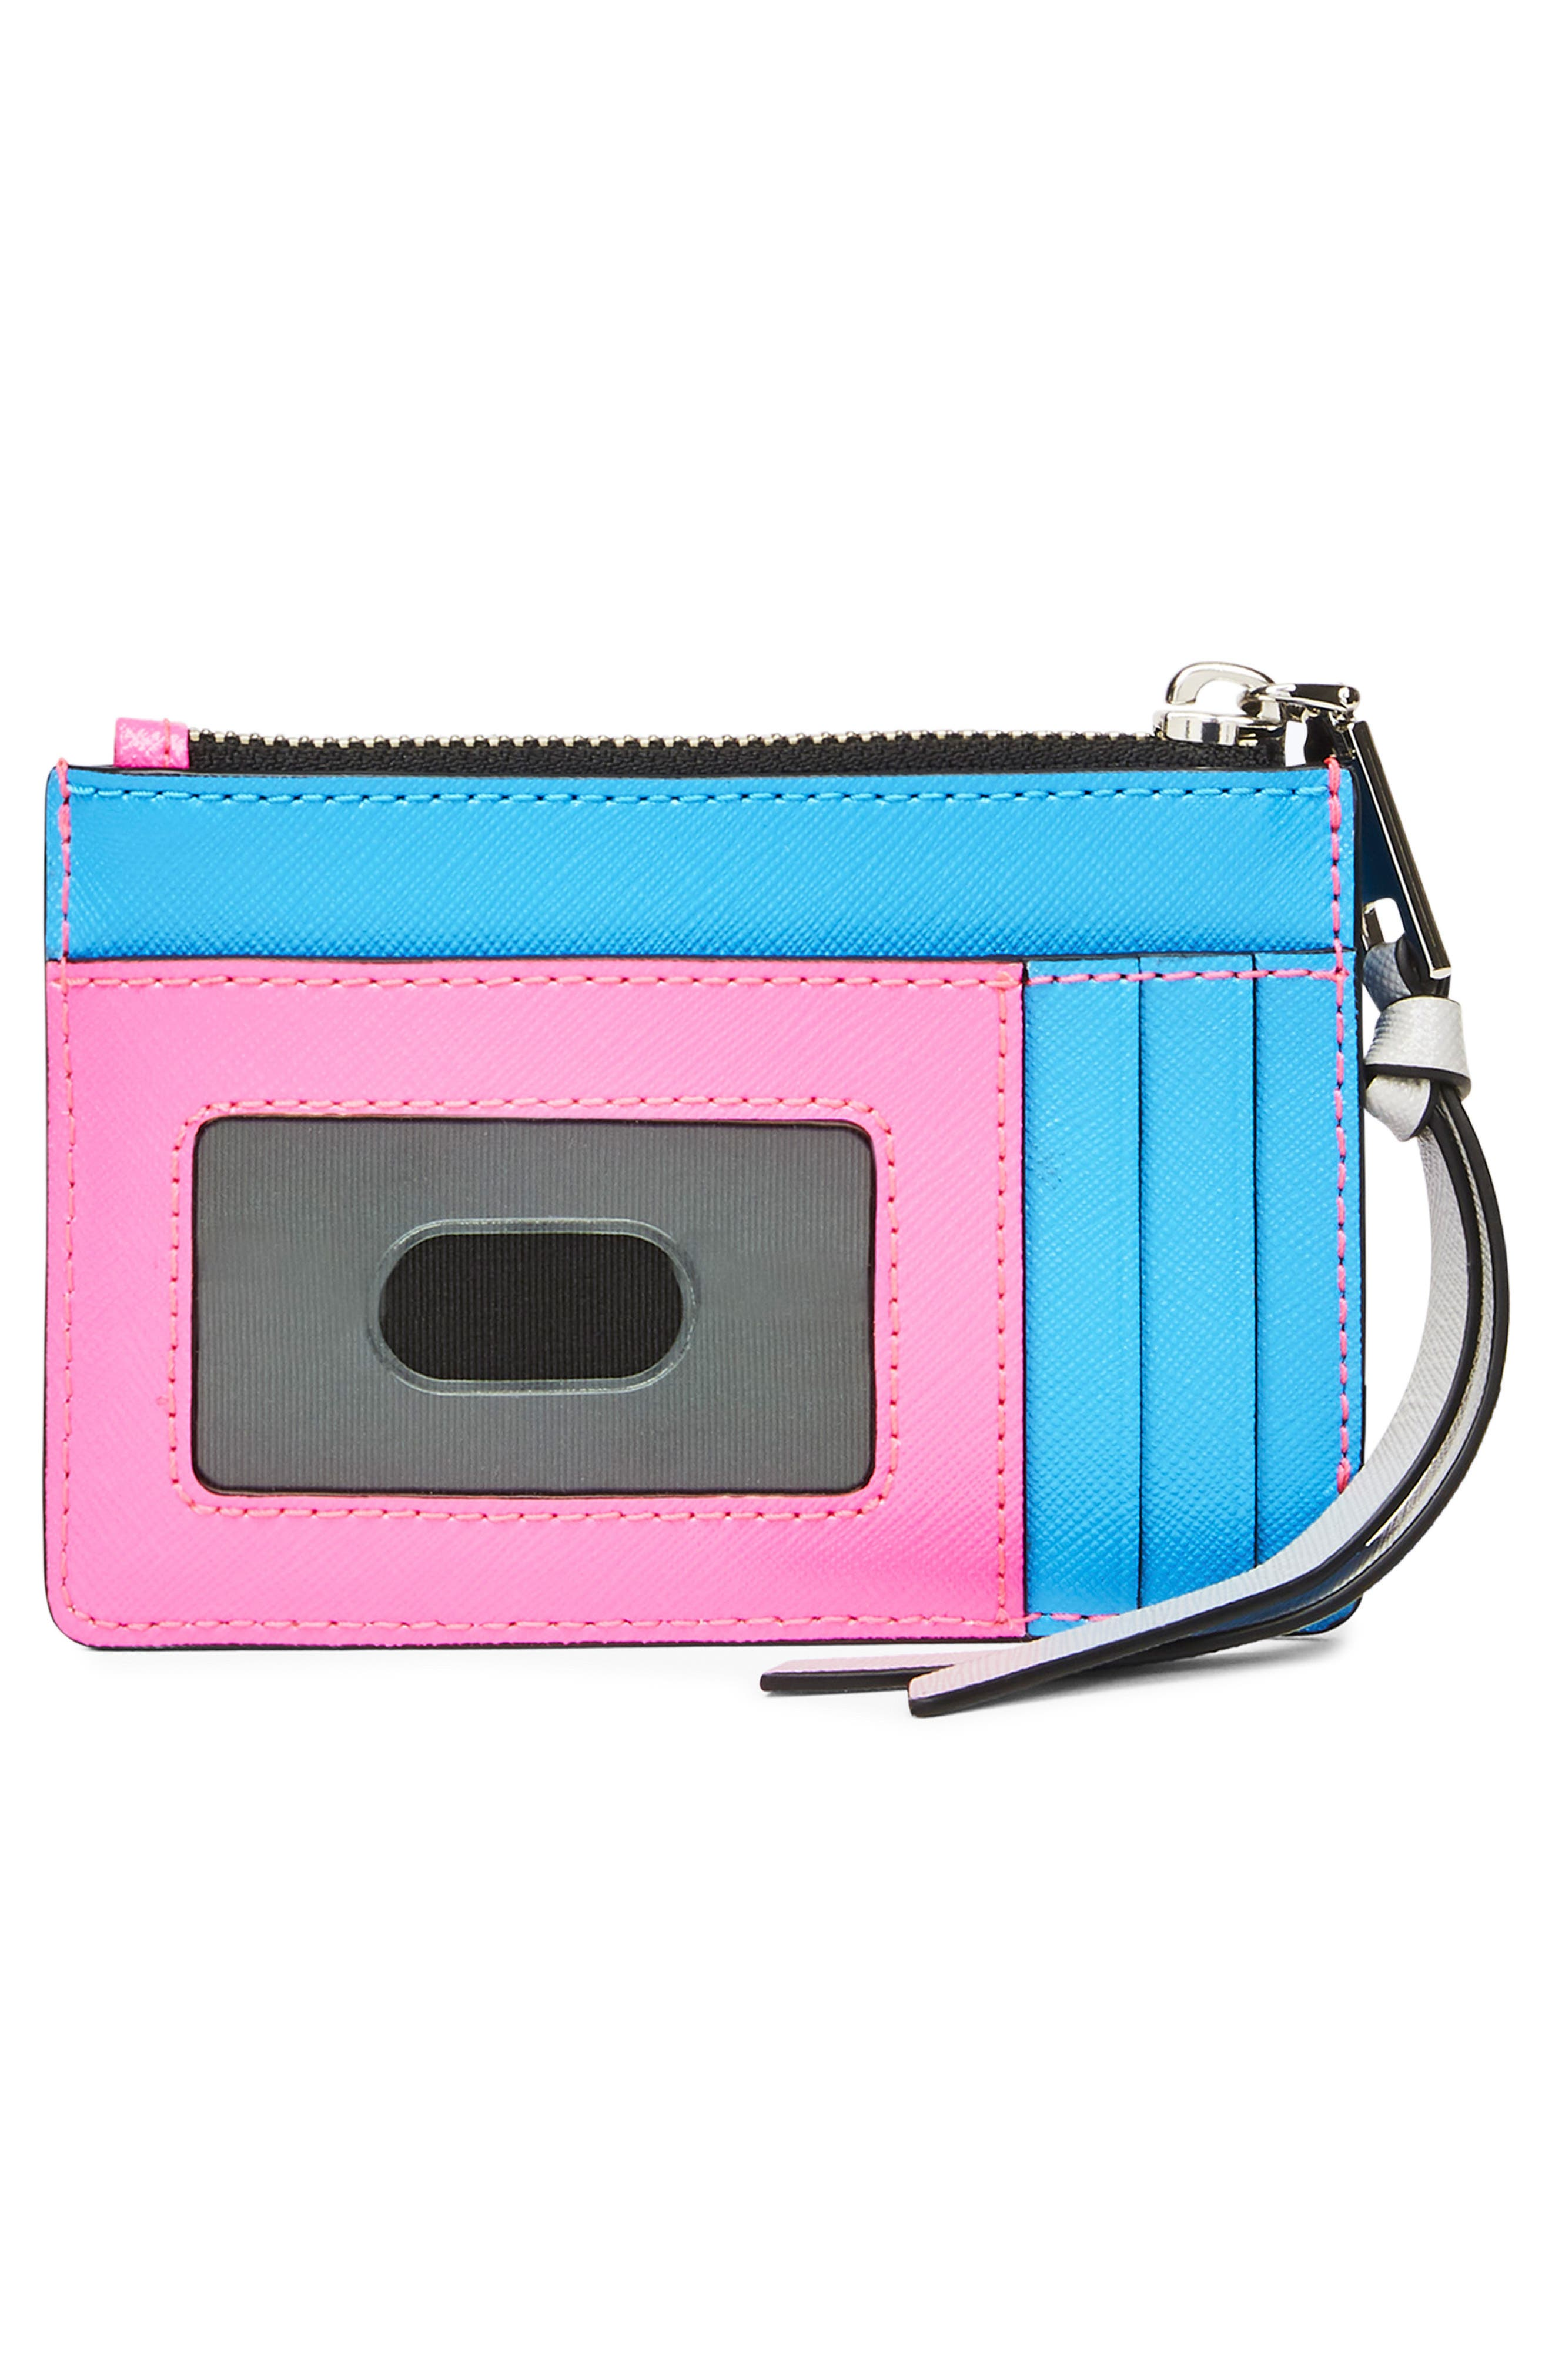 Snapshot Small Leather Wallet,                             Alternate thumbnail 2, color,                             BRIGHT PINK MULTI